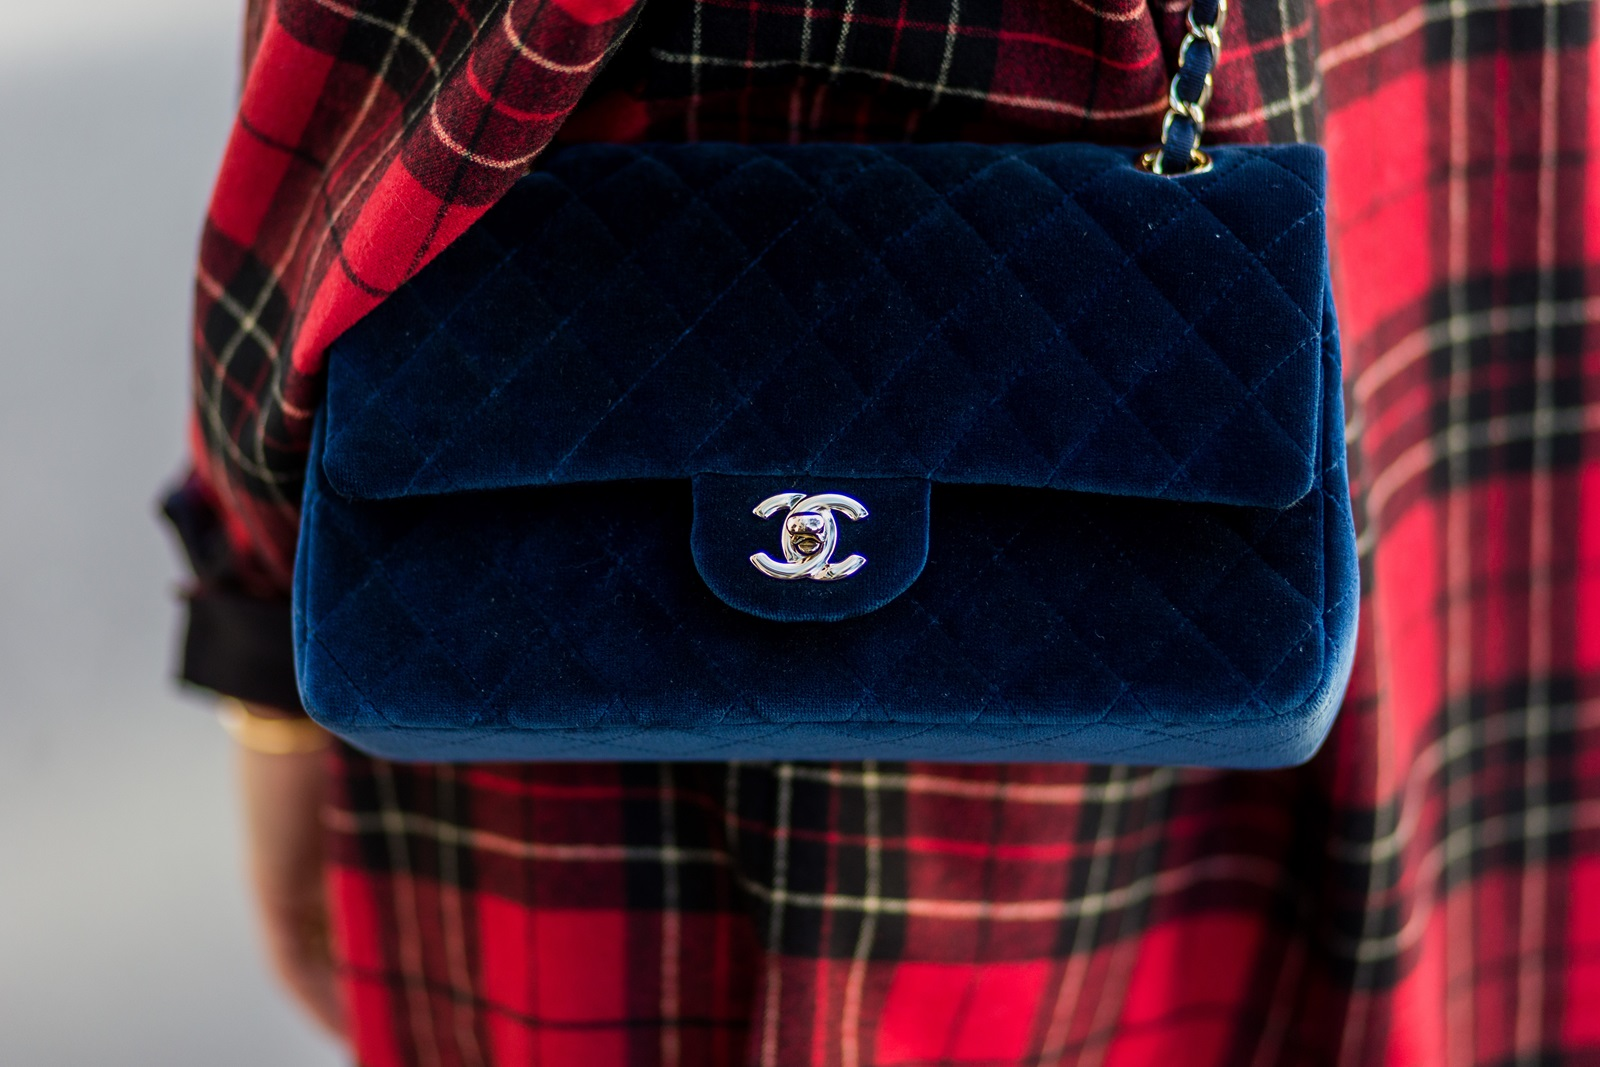 PARIS, FRANCE - OCTOBER 04: German fashion blogger Lisa Hahnbueck (@lisarvd) wearing Saint Laurent checked red Oversize Shirt, JBrand Highwaist Jeans, navy Chanel bag on October 4, 2016 in Paris, France. (Photo by Christian Vierig/Getty Images) *** Local Caption *** Lisa Hahnbueck